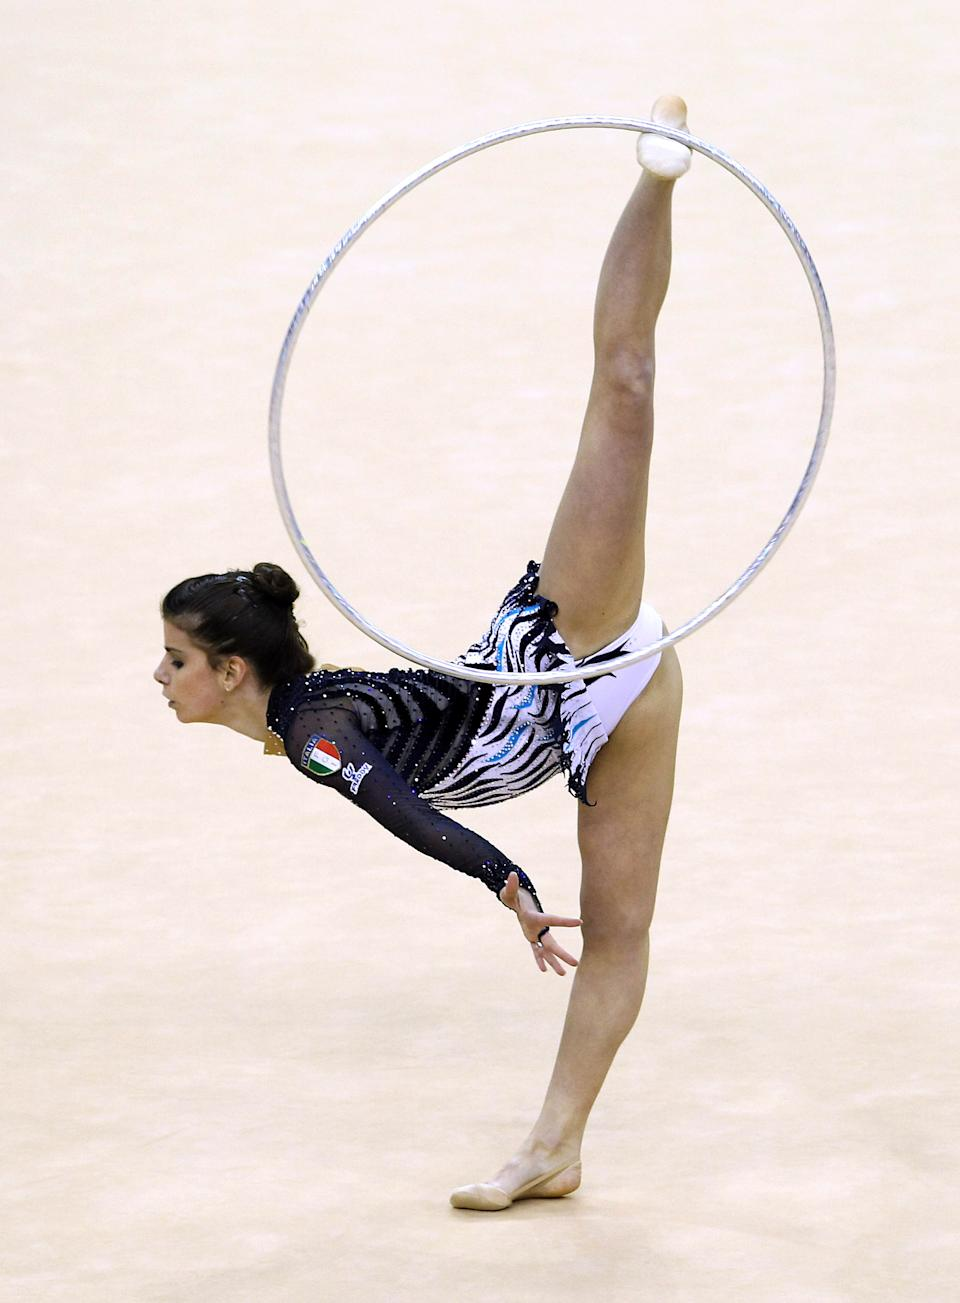 Federica Febbo of Italy in action in the Individual All-Around Final during the FIG Rhythmic Gymnastics in London.